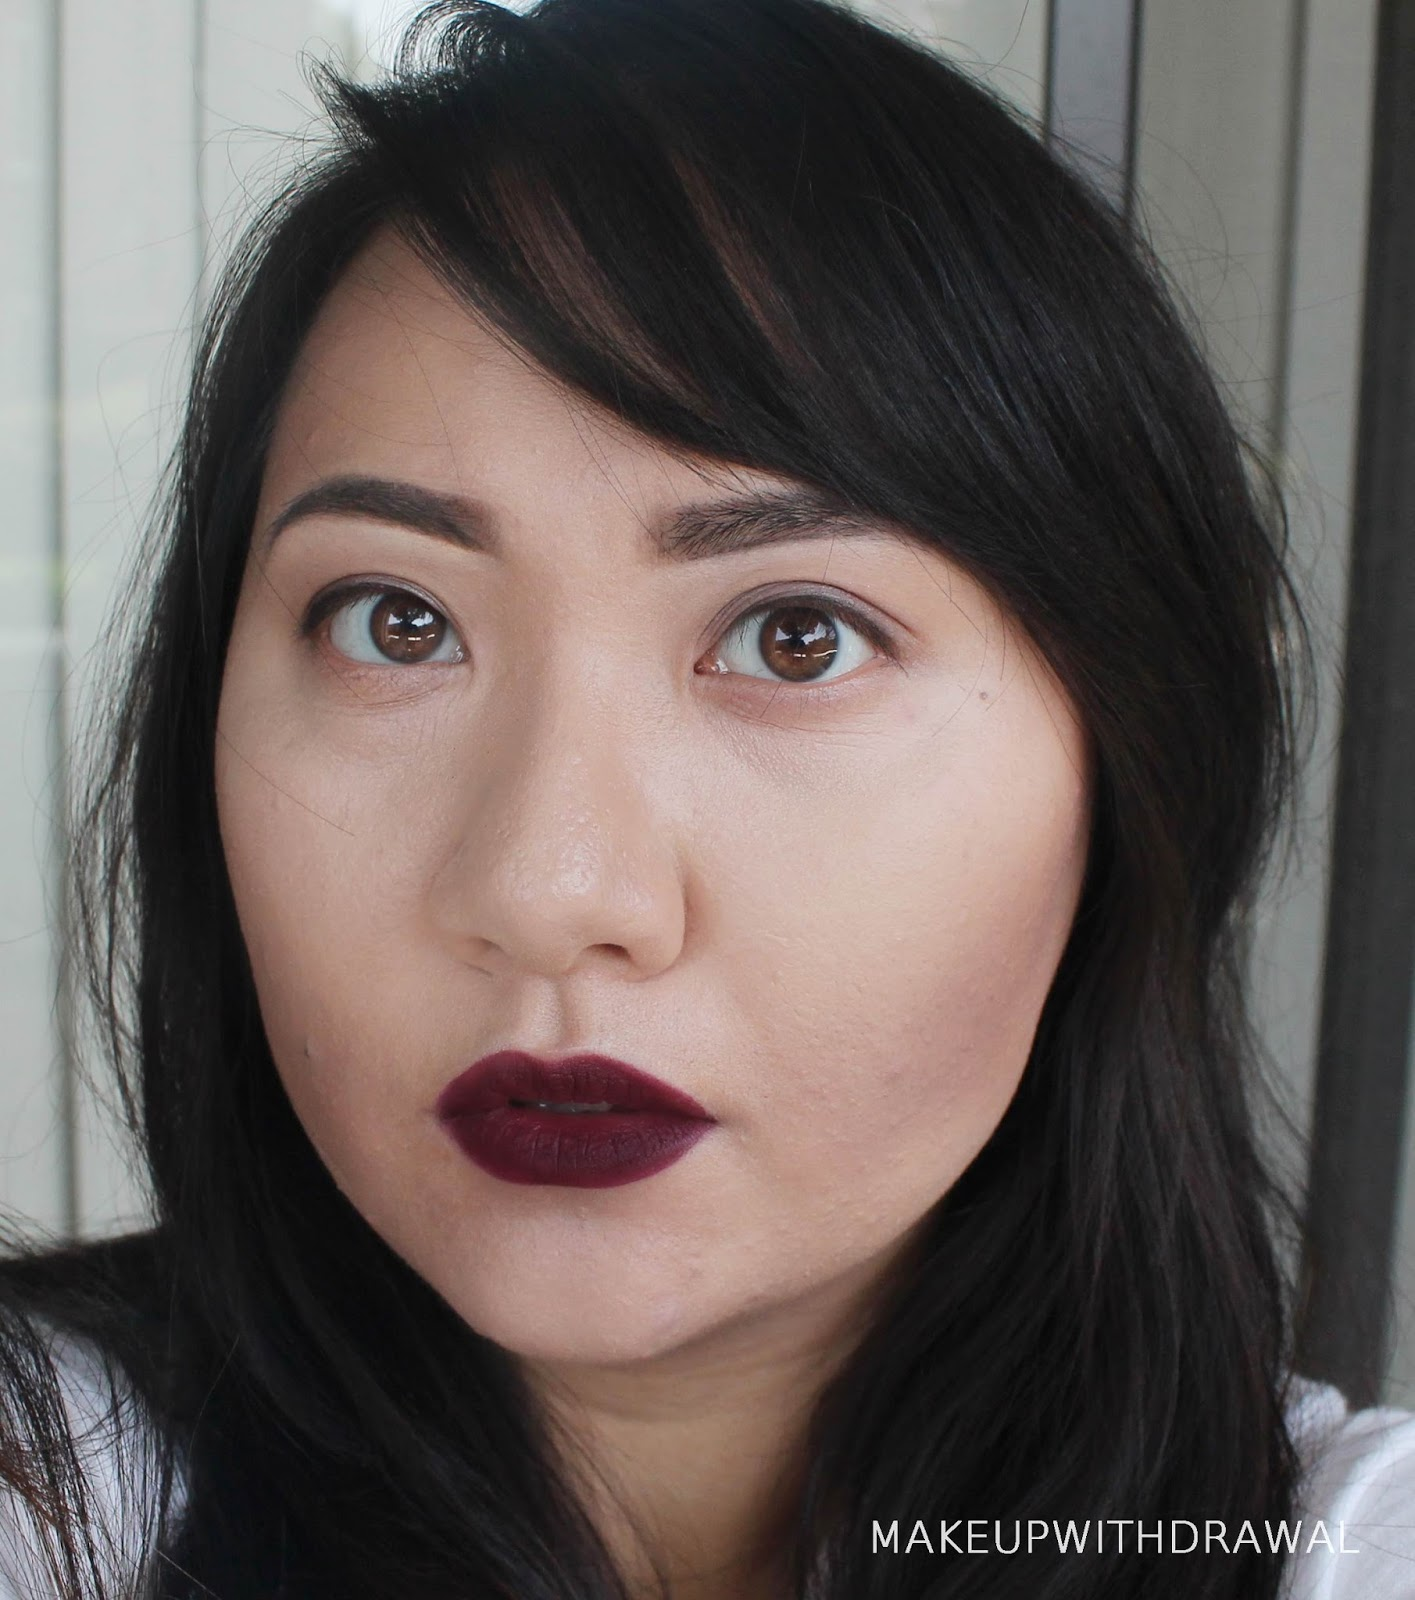 I Used Lhasa As A Sheer Wash All Over The Lids And Used Mekong To Line